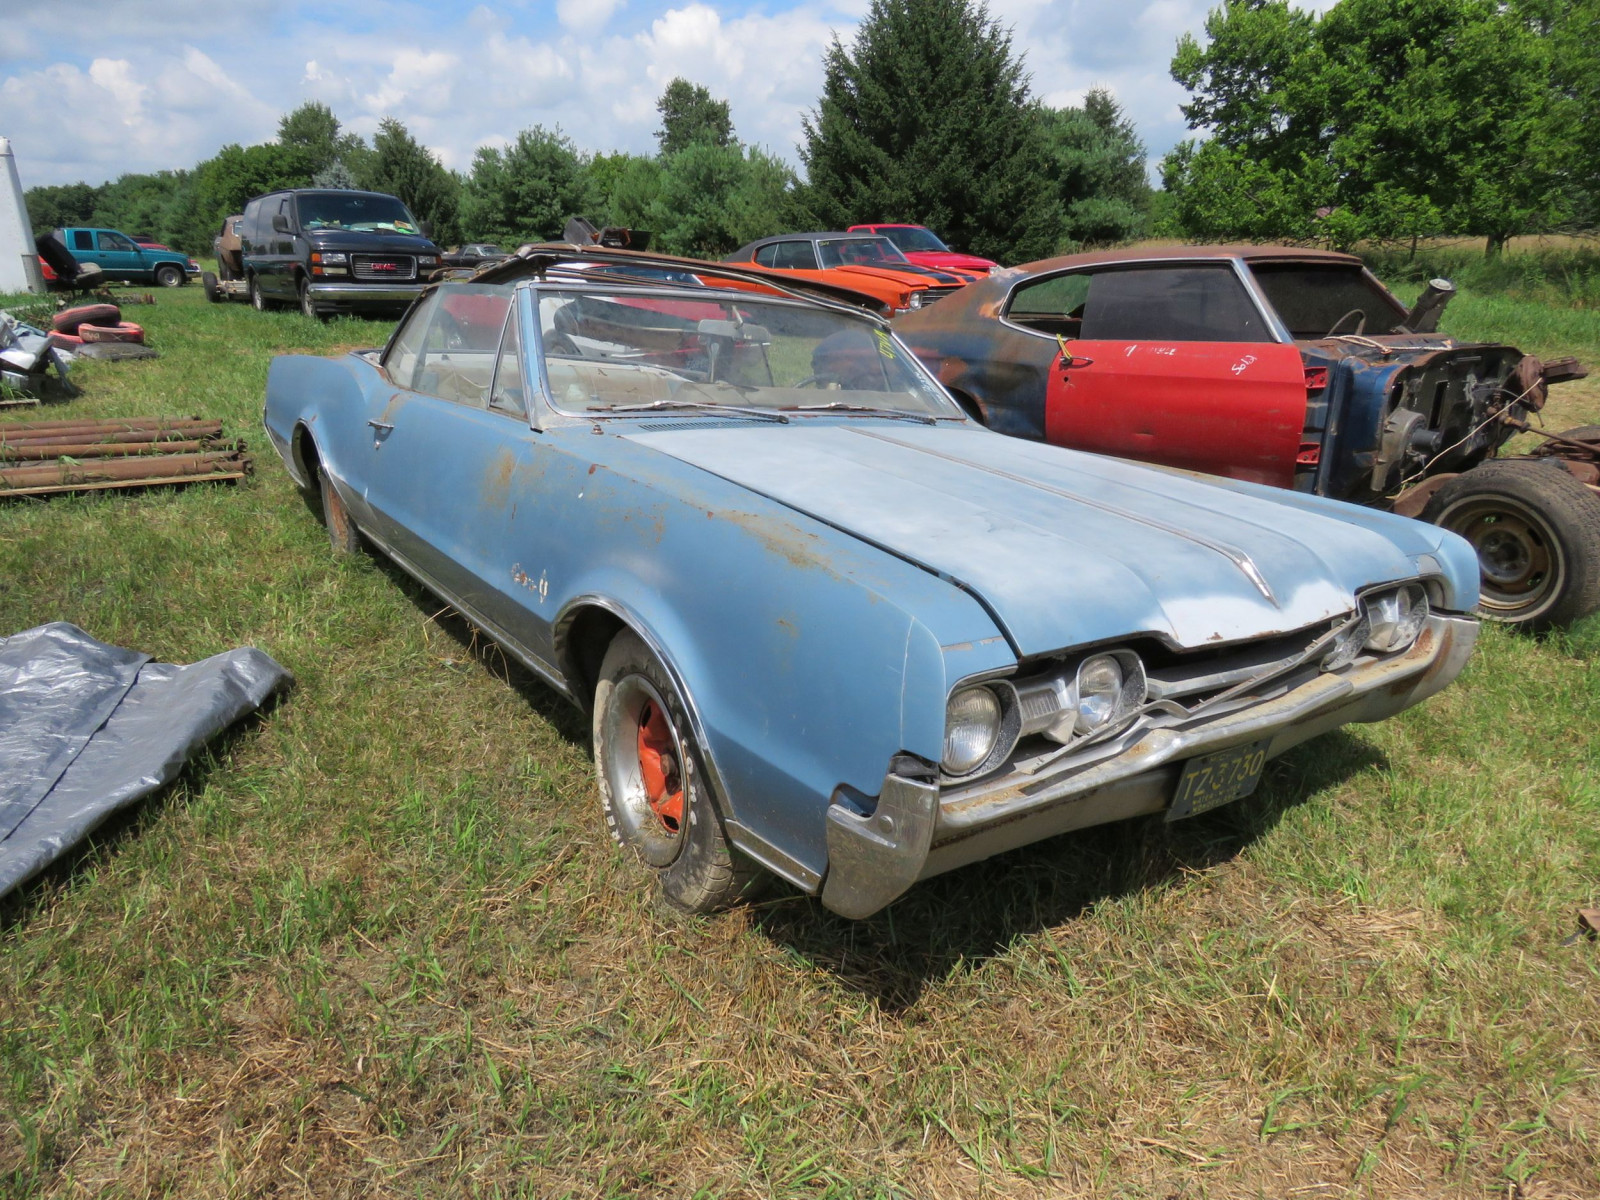 1967 Oldsmobile Cutlas Convertible Parts Car - Image 3